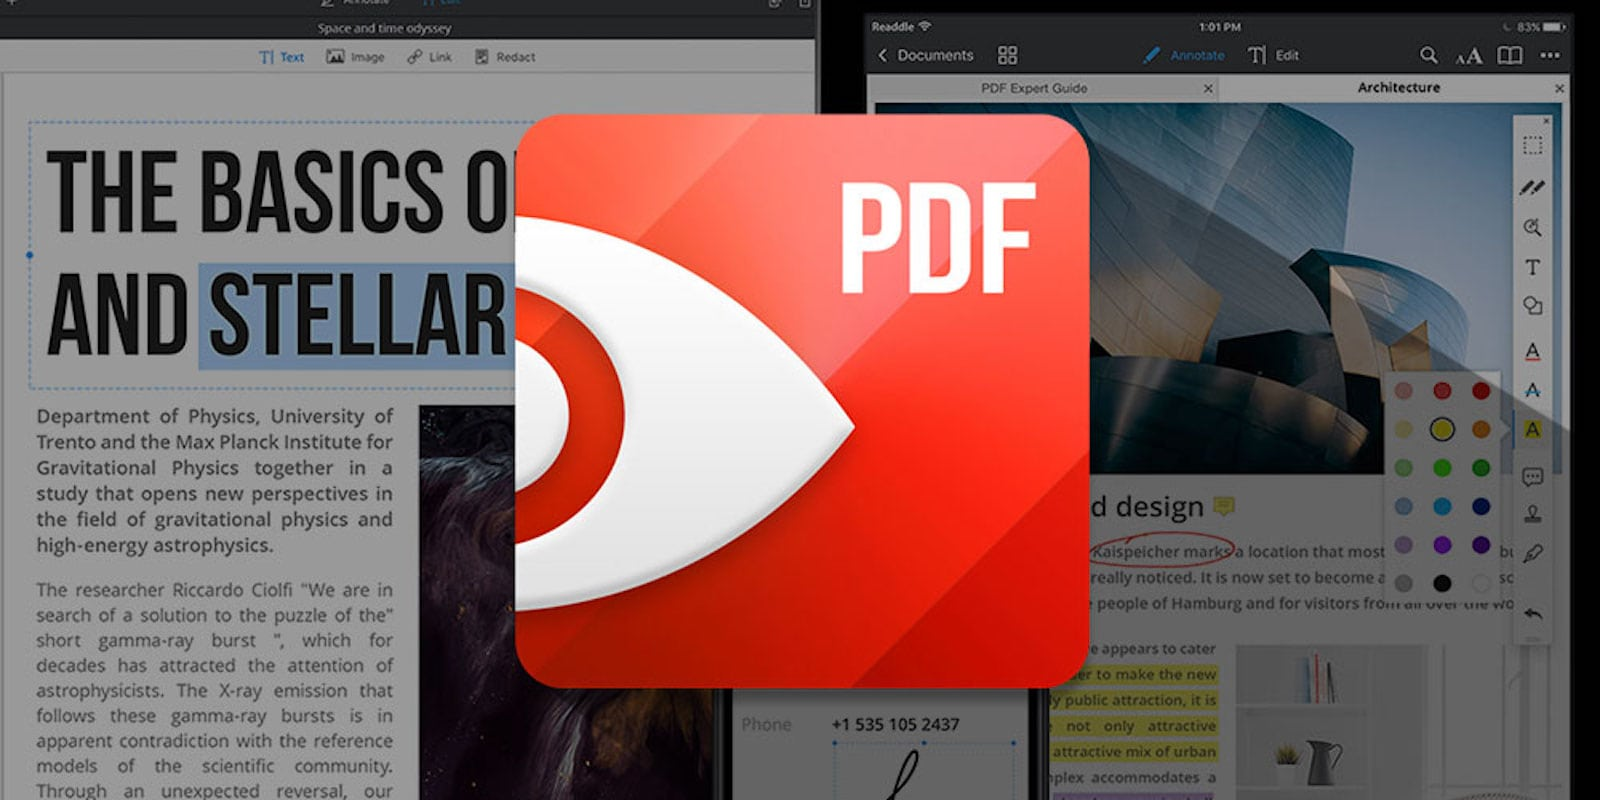 This app makes PDFs as easy to edit as any Word document.